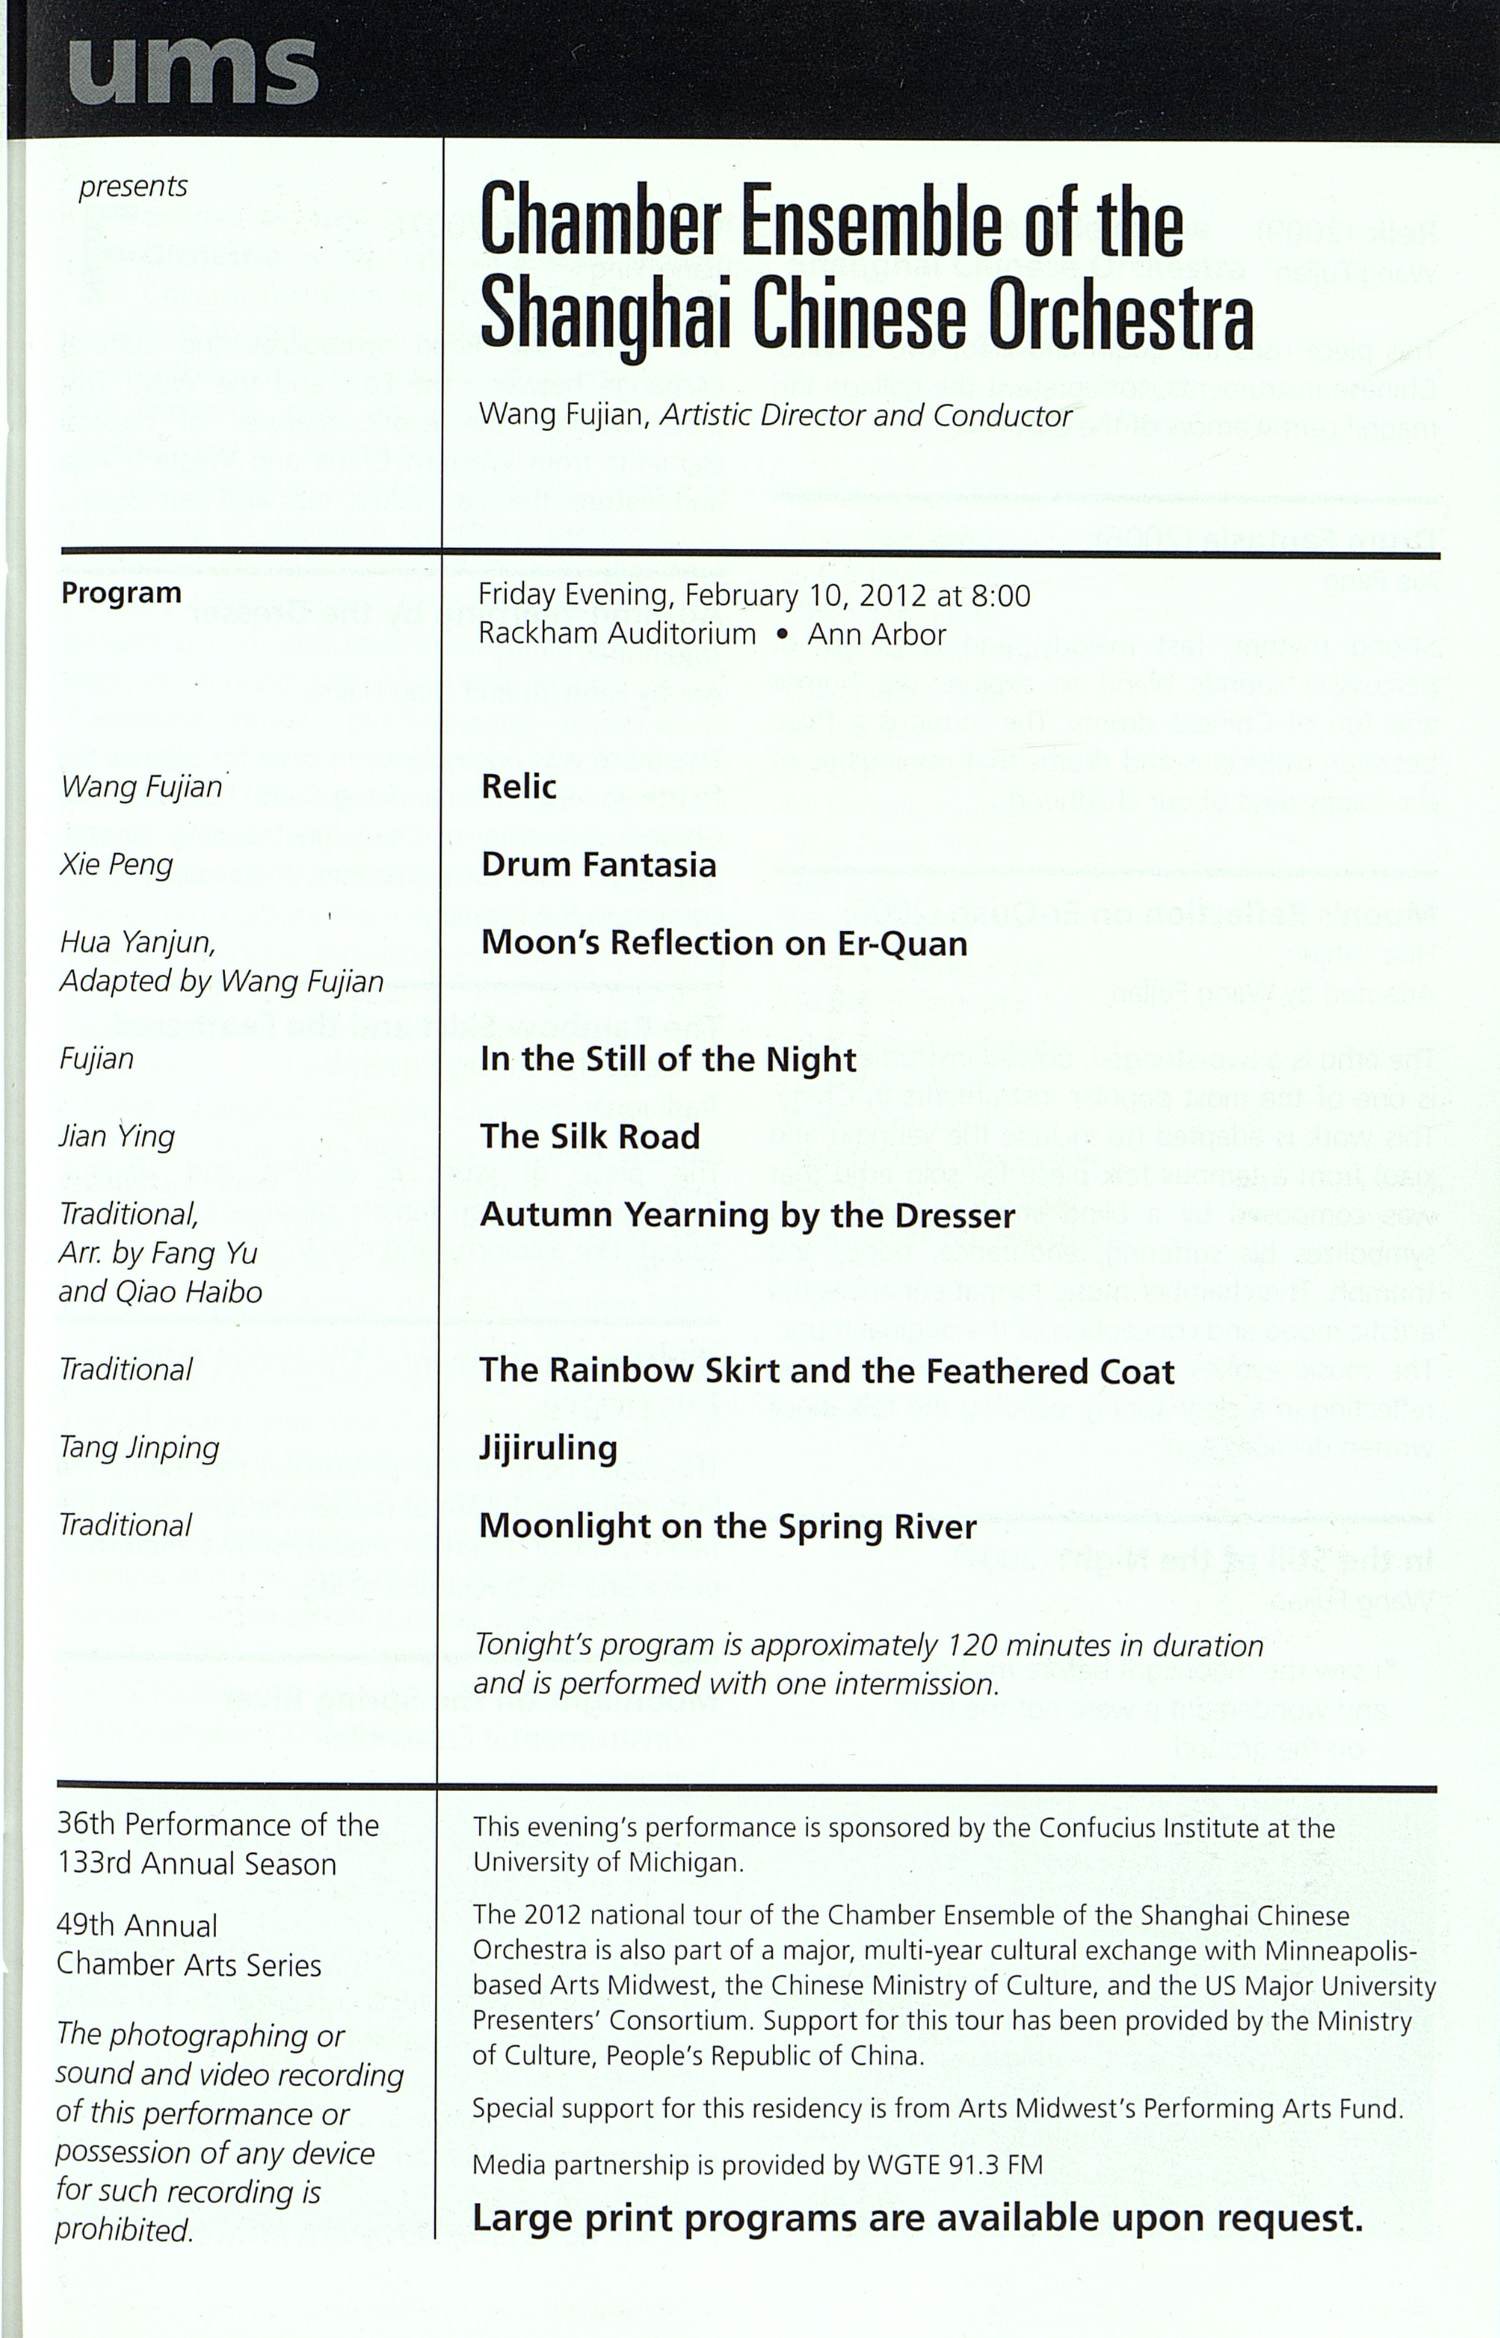 UMS Concert Program, Monday Jan. 23 To Feb. 10: Ums 11 12 - Winter 2012 - Monday Jan. 23 To Feb. 10 --  image